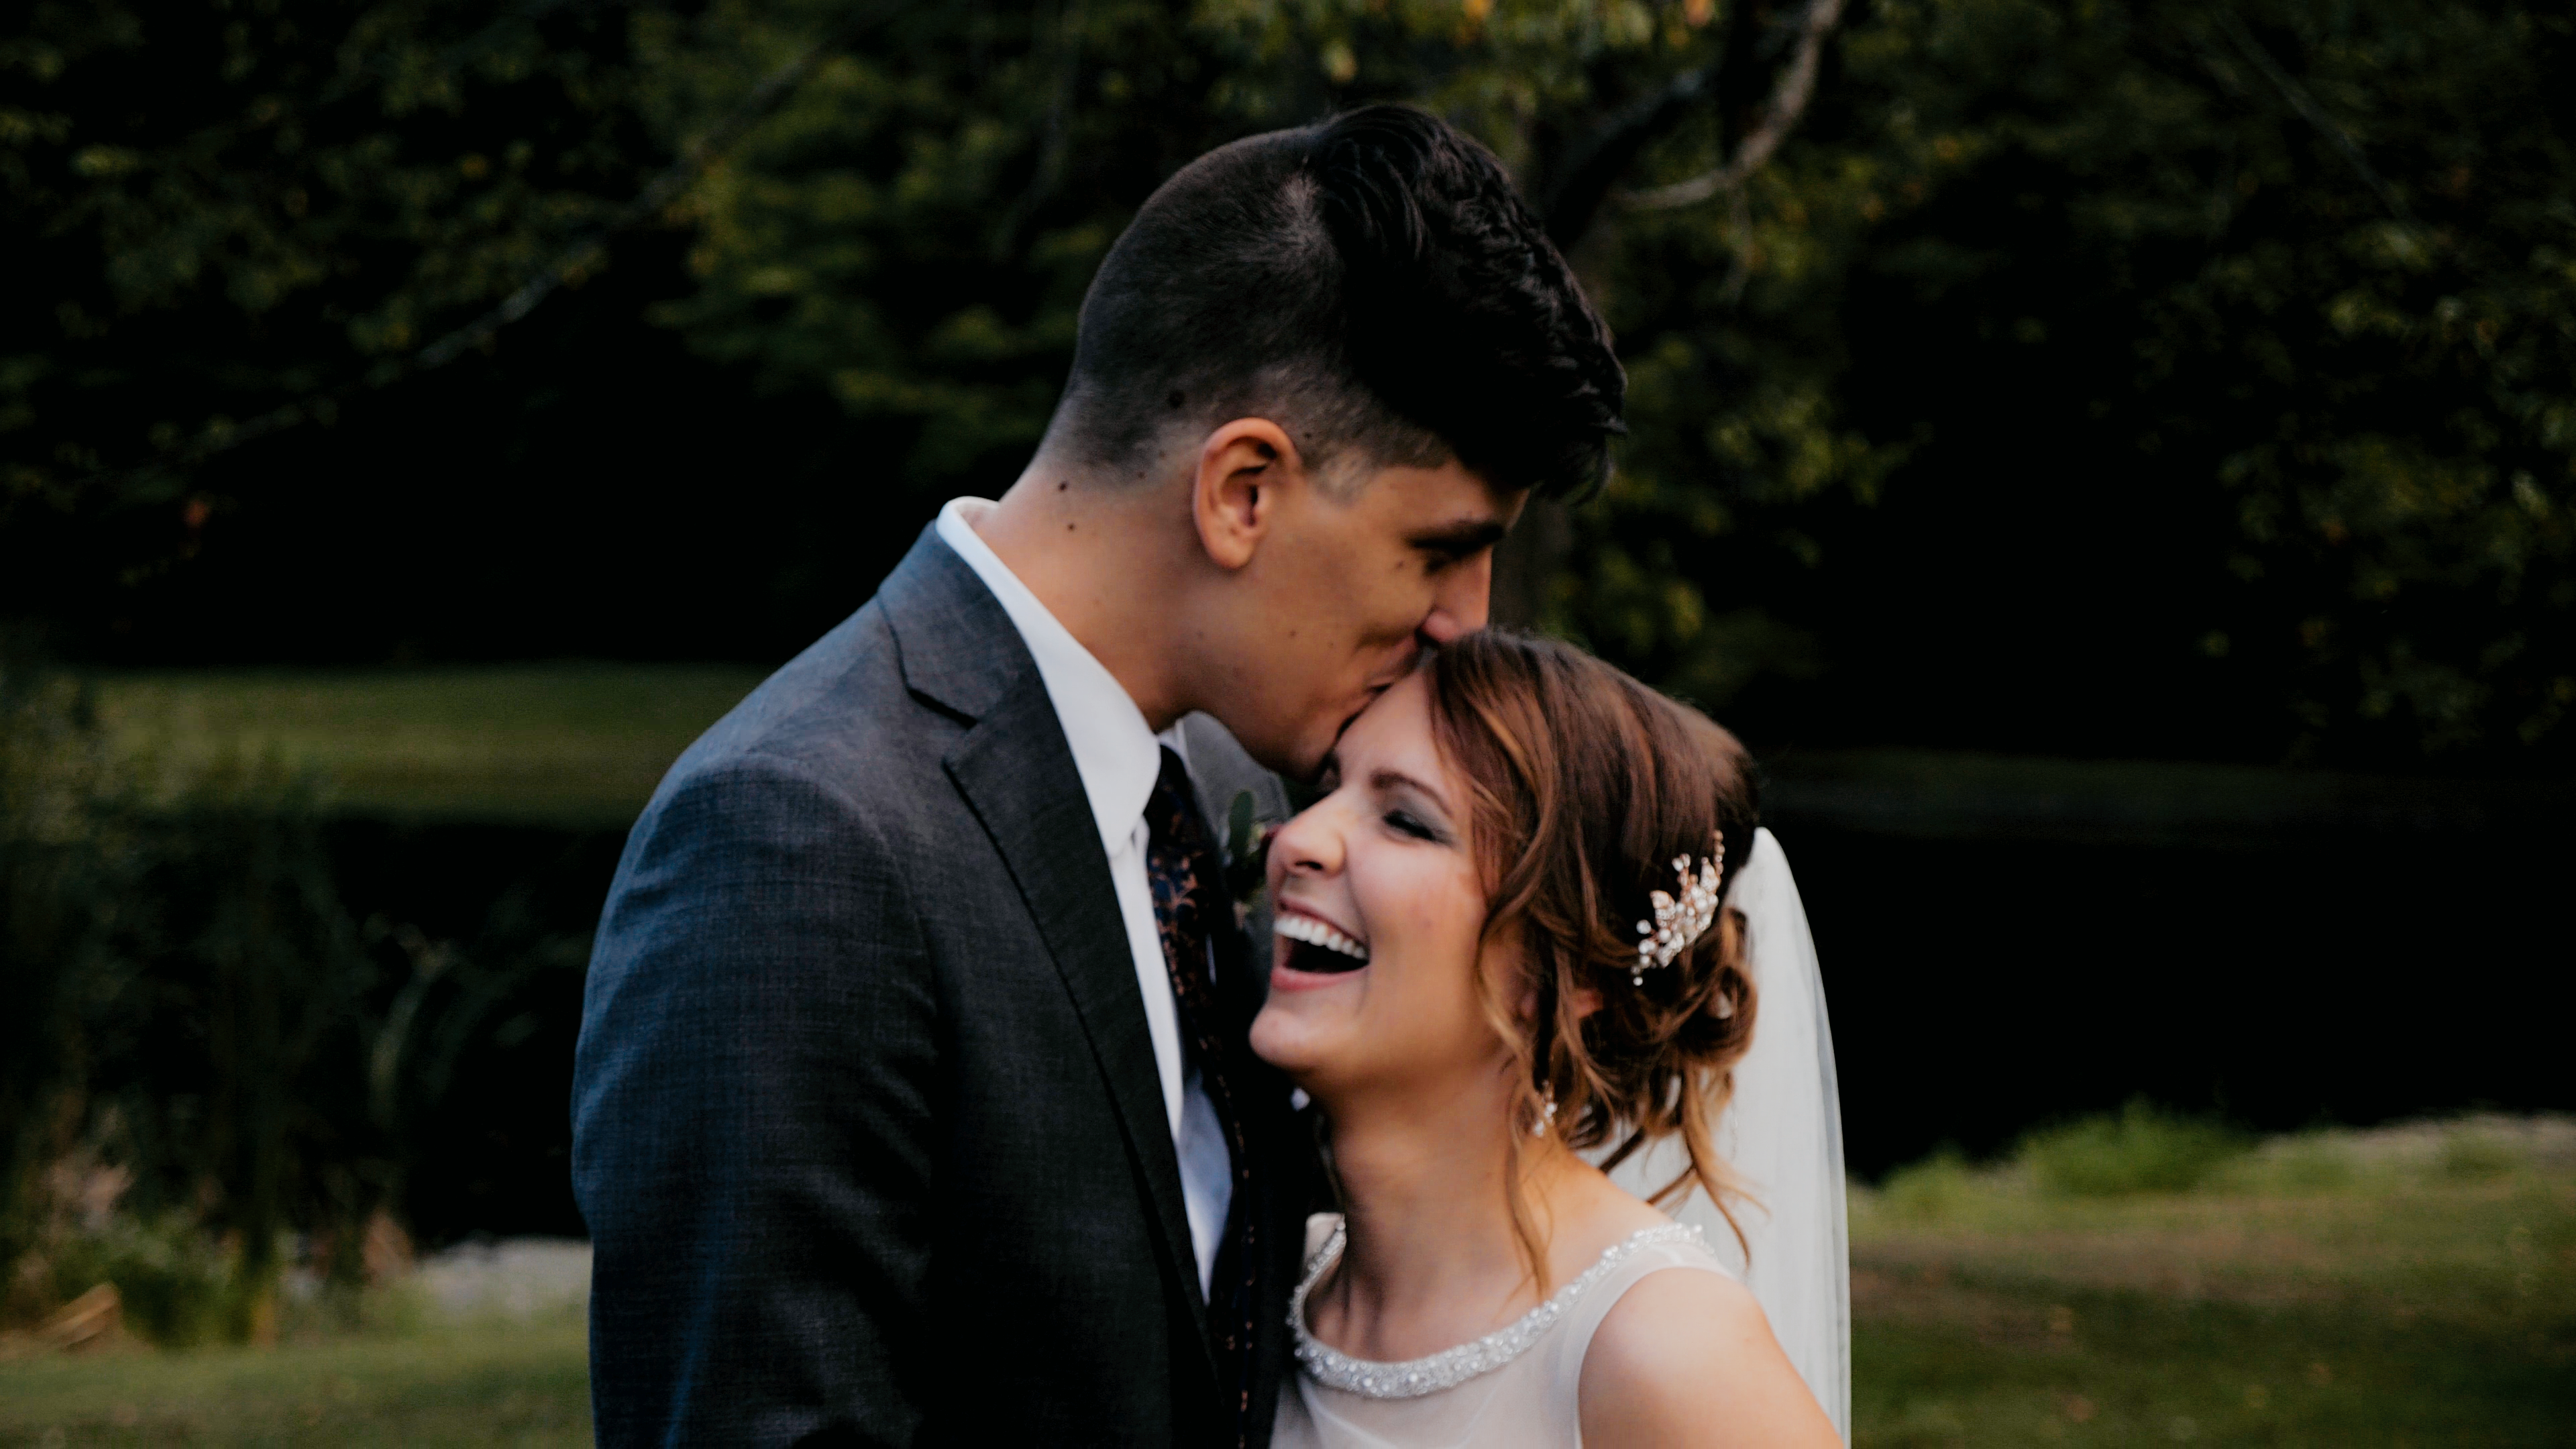 Bekah + Aaron | Chagrin Falls, Ohio | Sun Valley Ohio